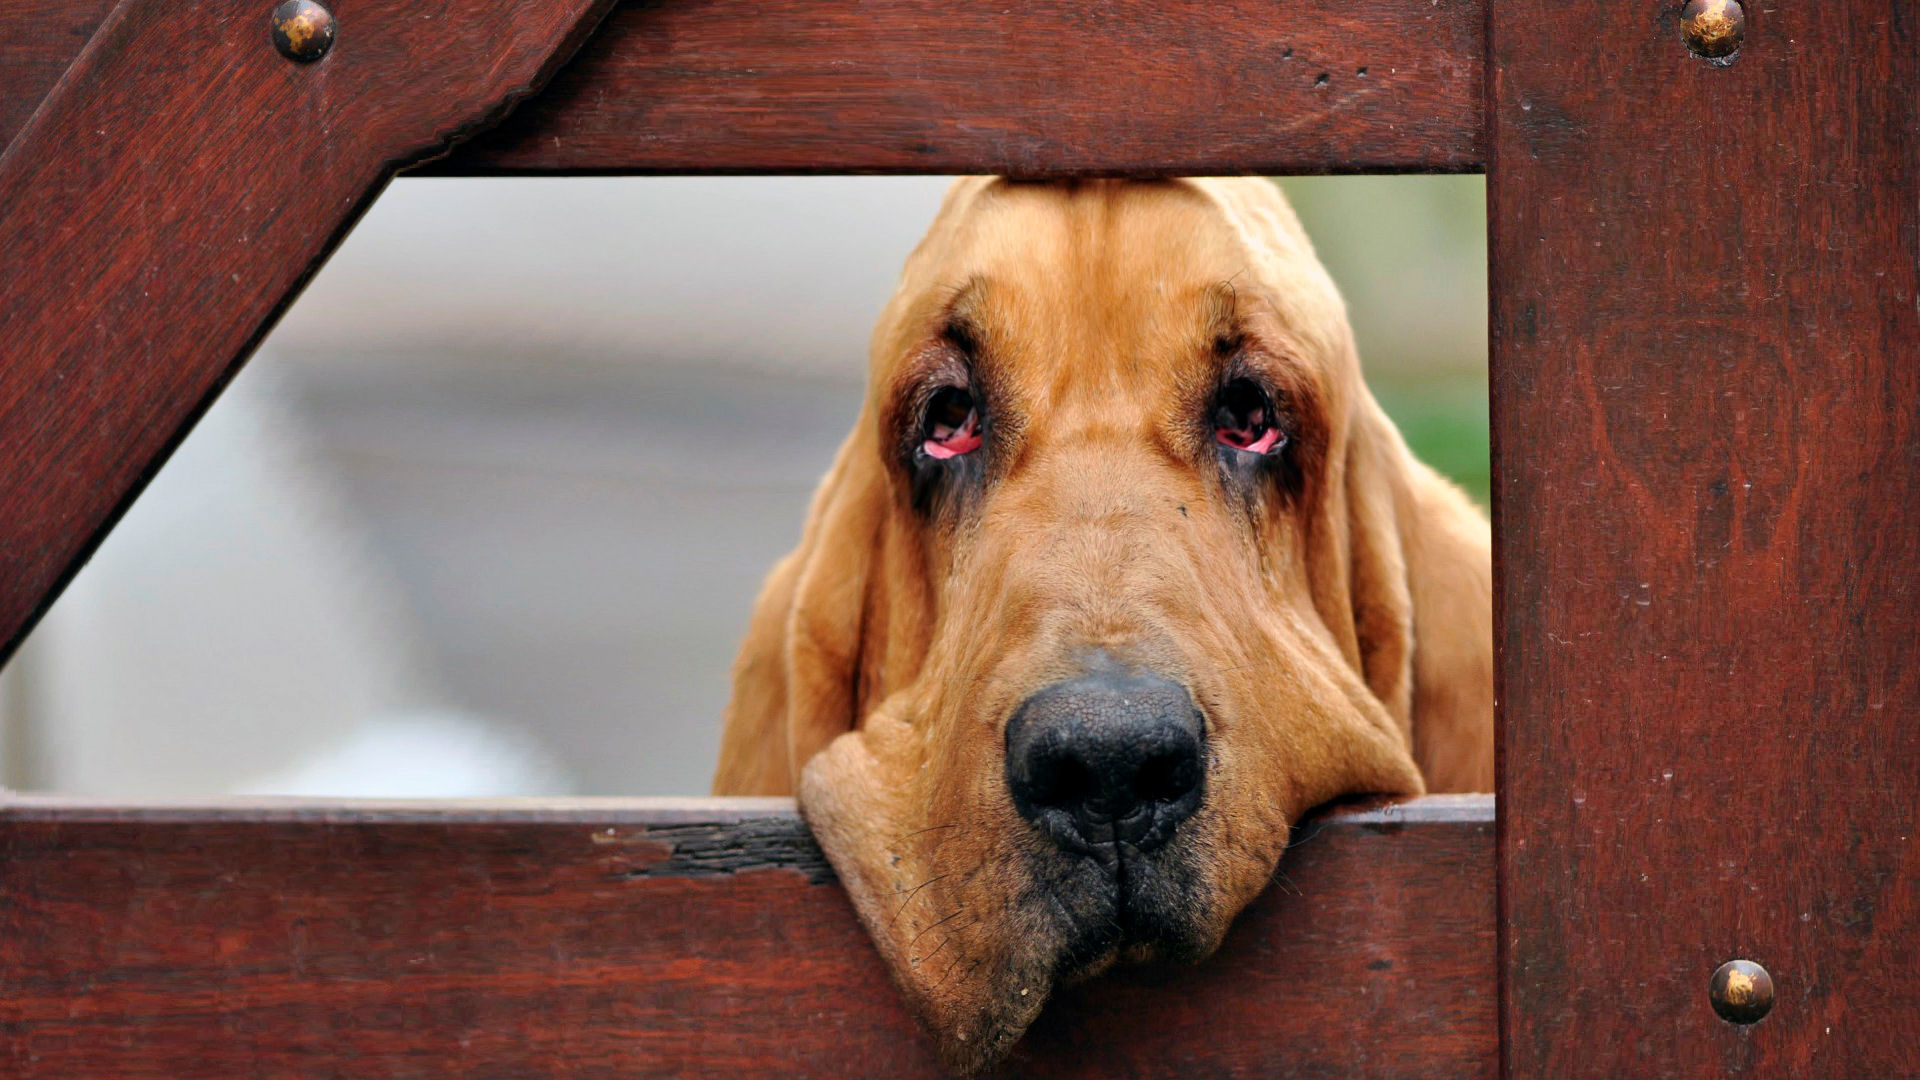 download Bloodhound became sad wallpapers and images 1920x1080